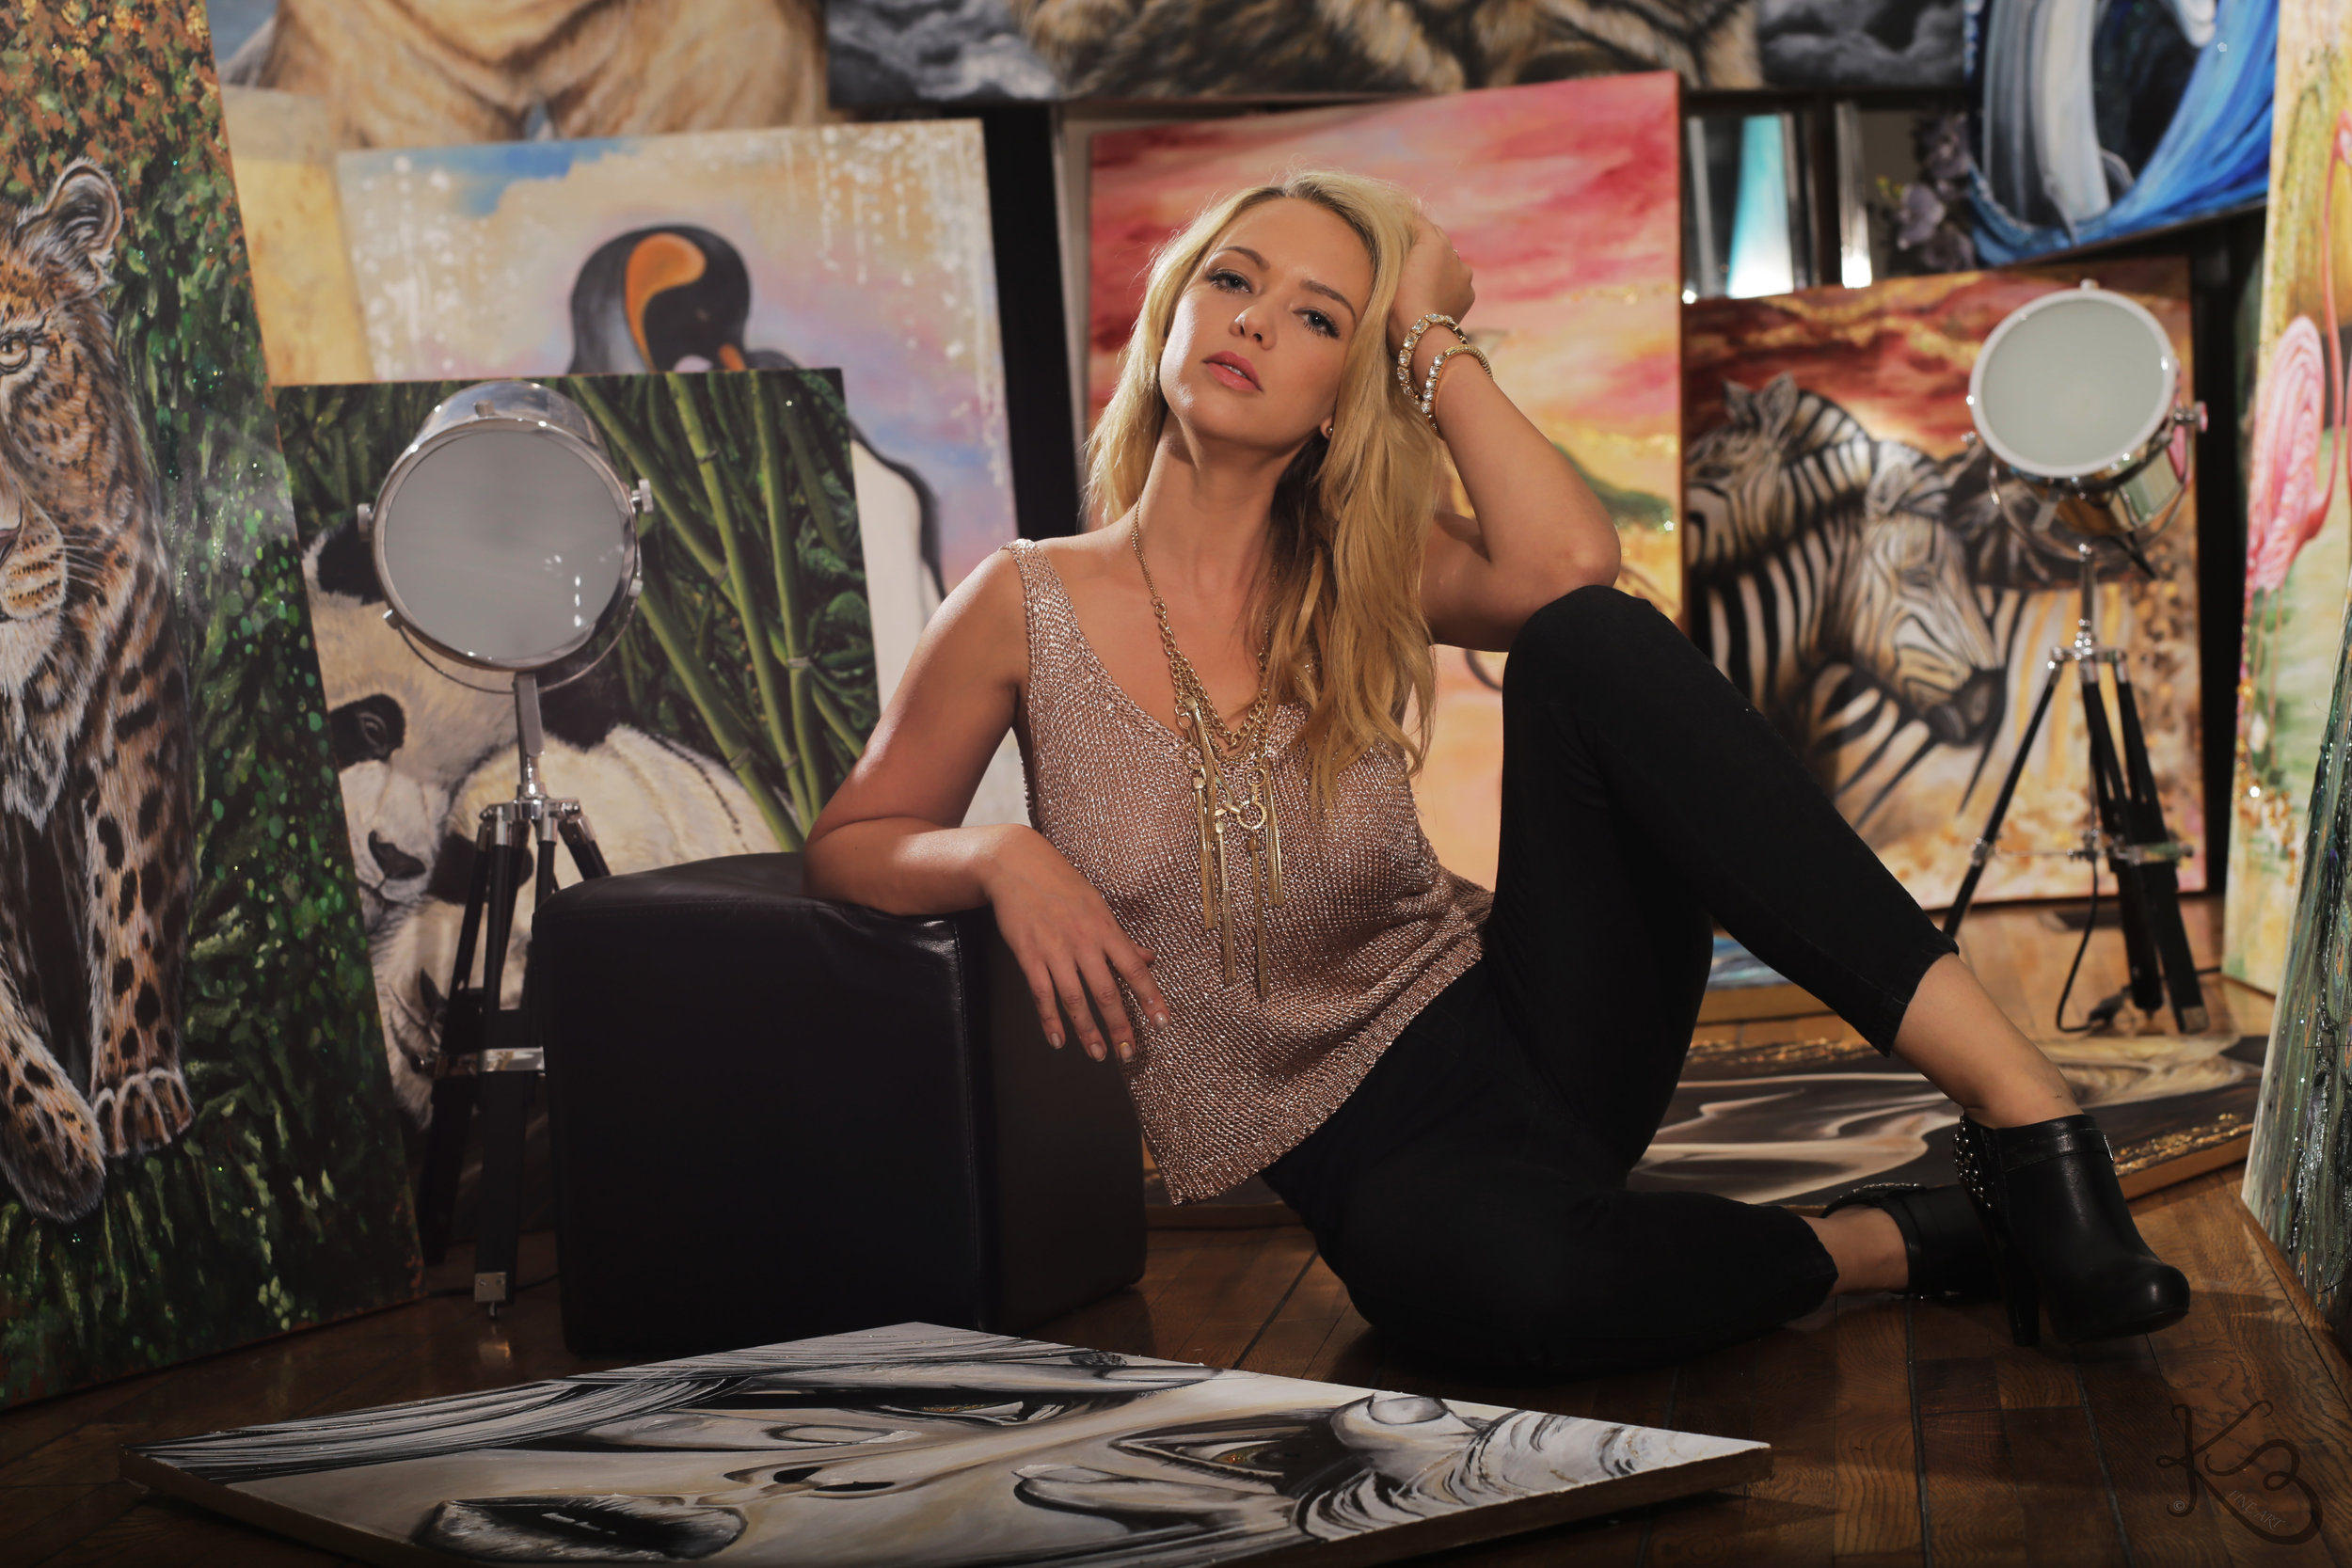 Karin on the floor surrounded by her art